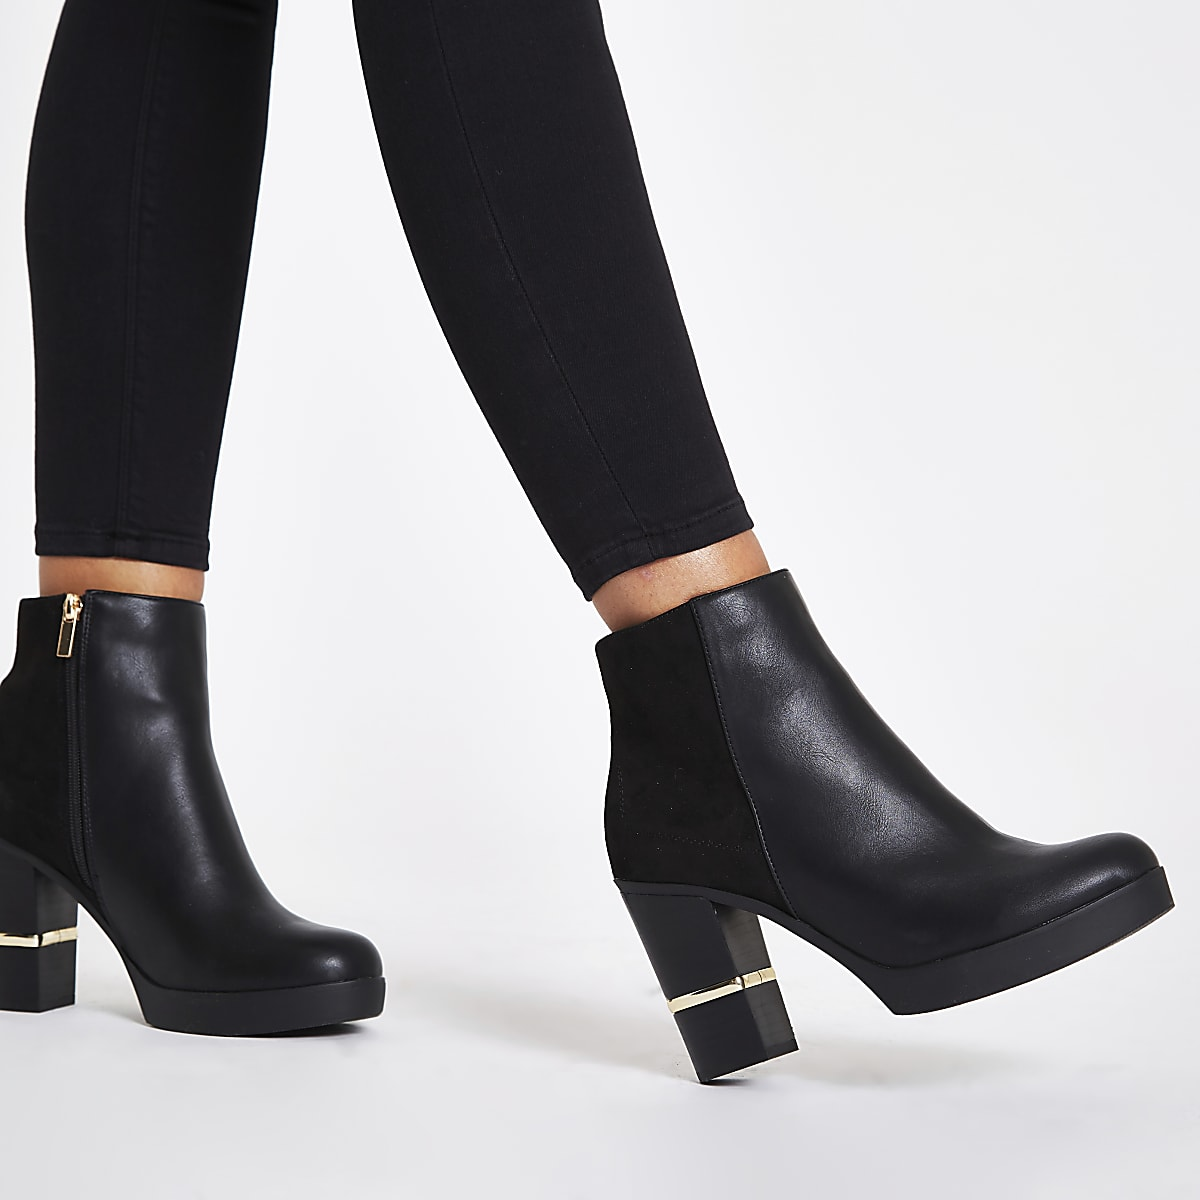 8f96777bb74 Black faux leather block heel ankle boots - Boots - Shoes   Boots ...